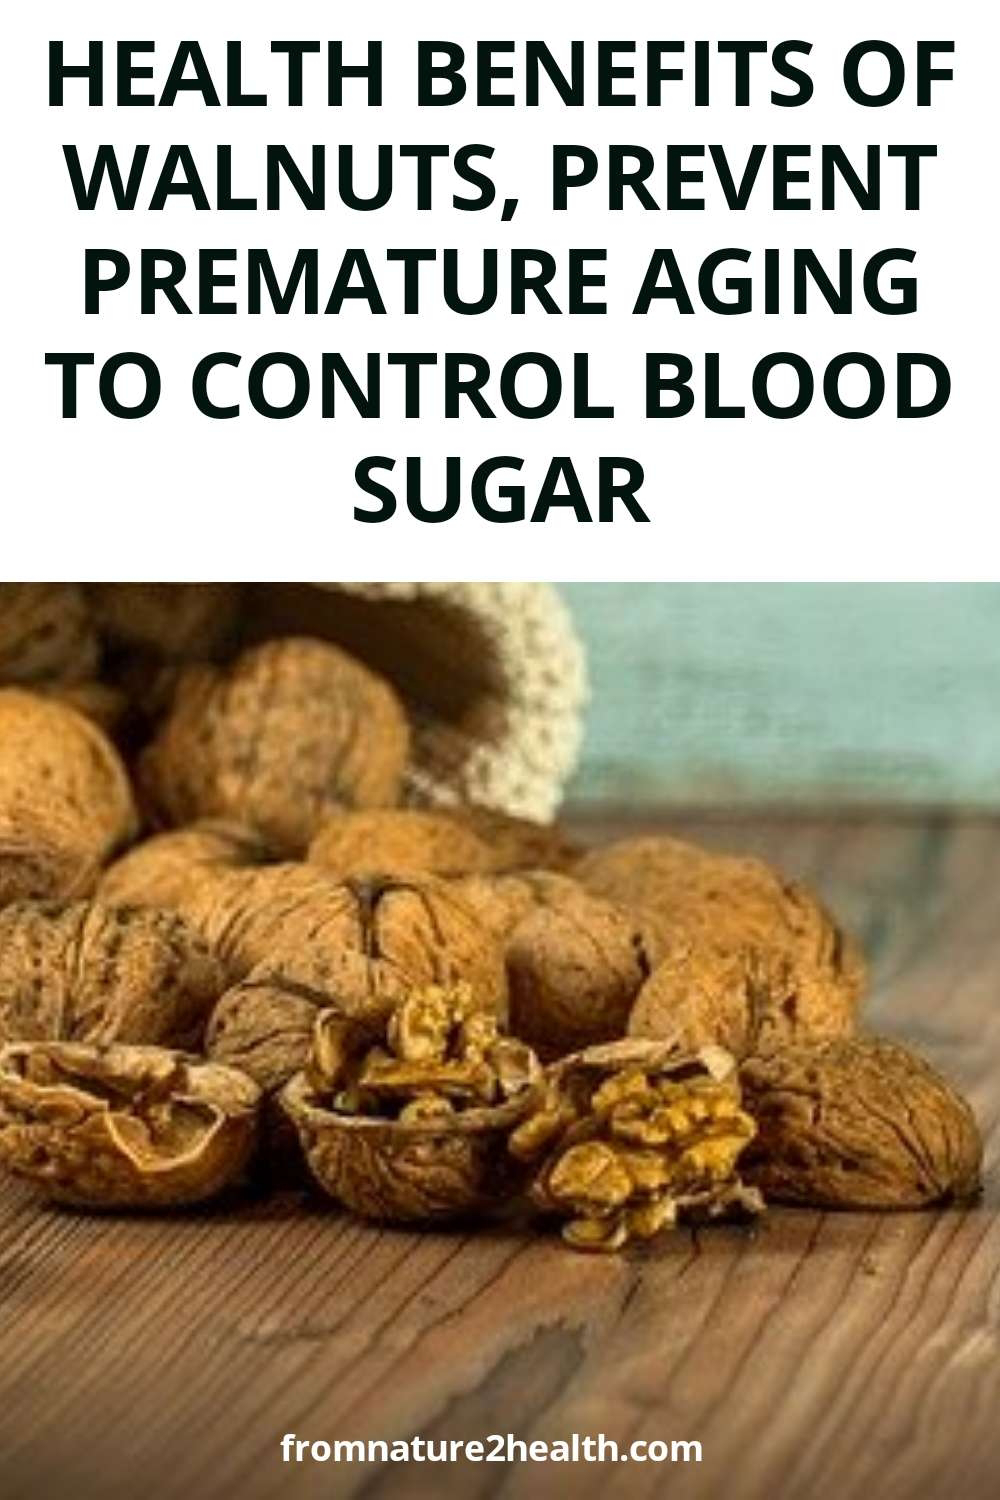 Health Benefits of Walnuts, Prevent Premature Aging to Control Blood Sugar